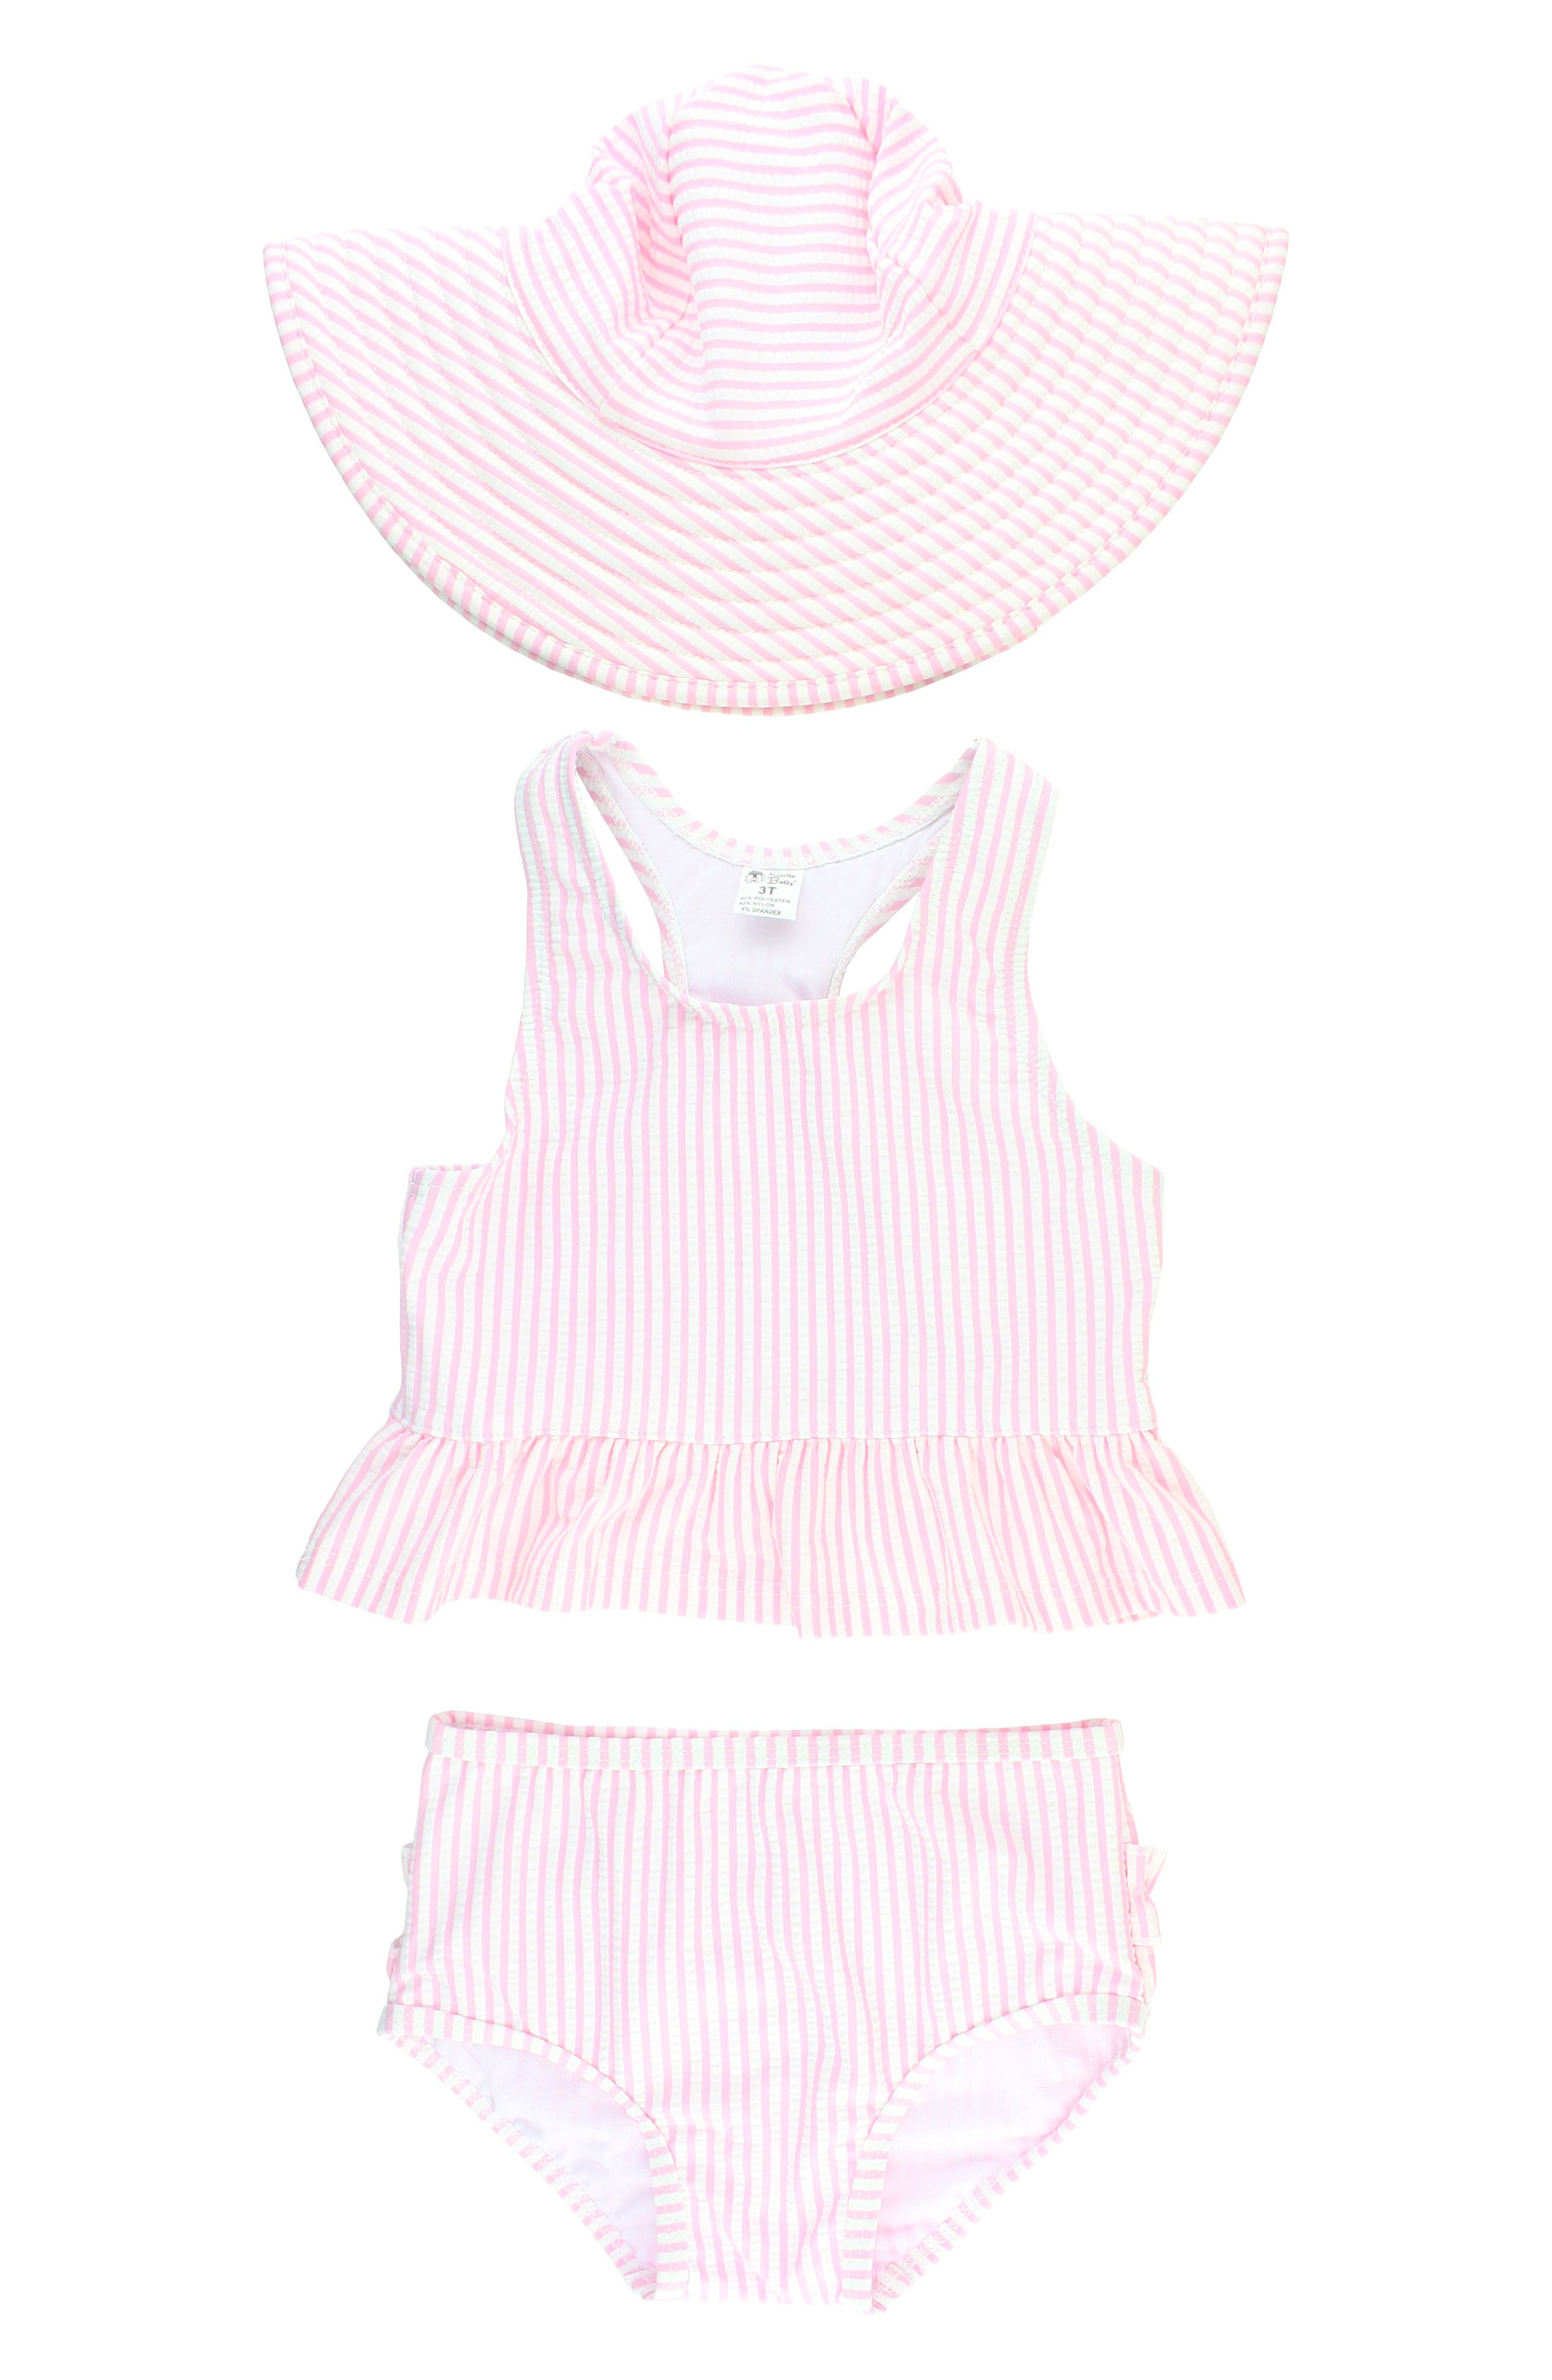 Alternate Image 1 Selected - RuffleButts Two-Piece Swimsuit & Hat Set (Toddler Girls & Little Girls)